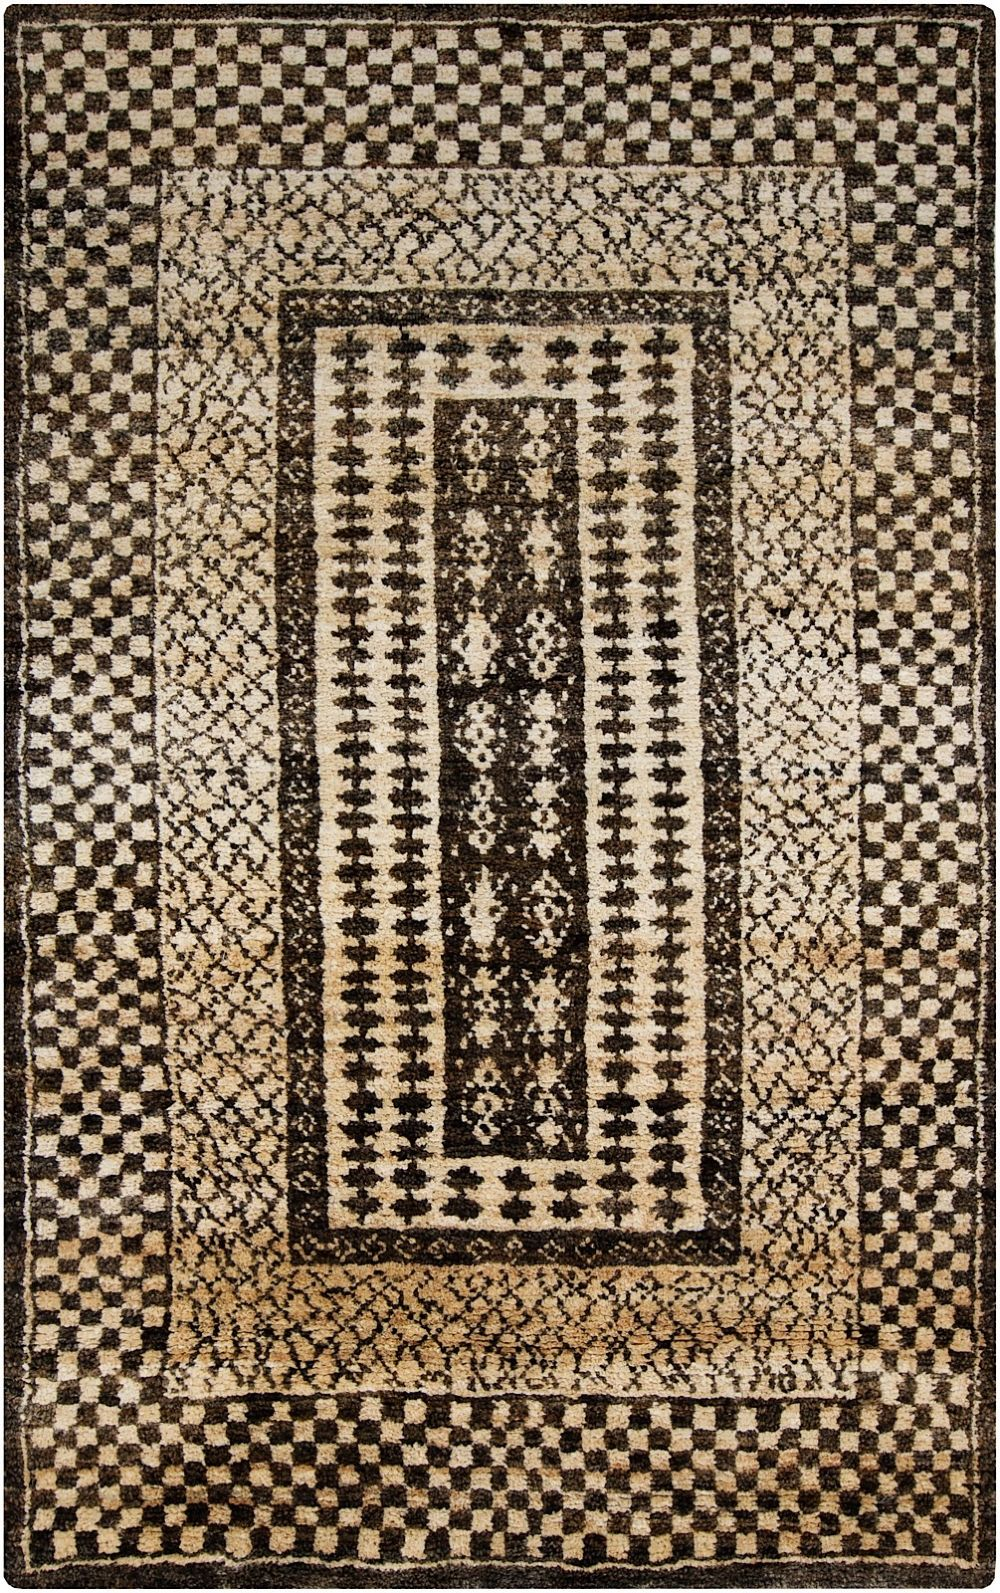 surya casablanca natural fiber area rug collection